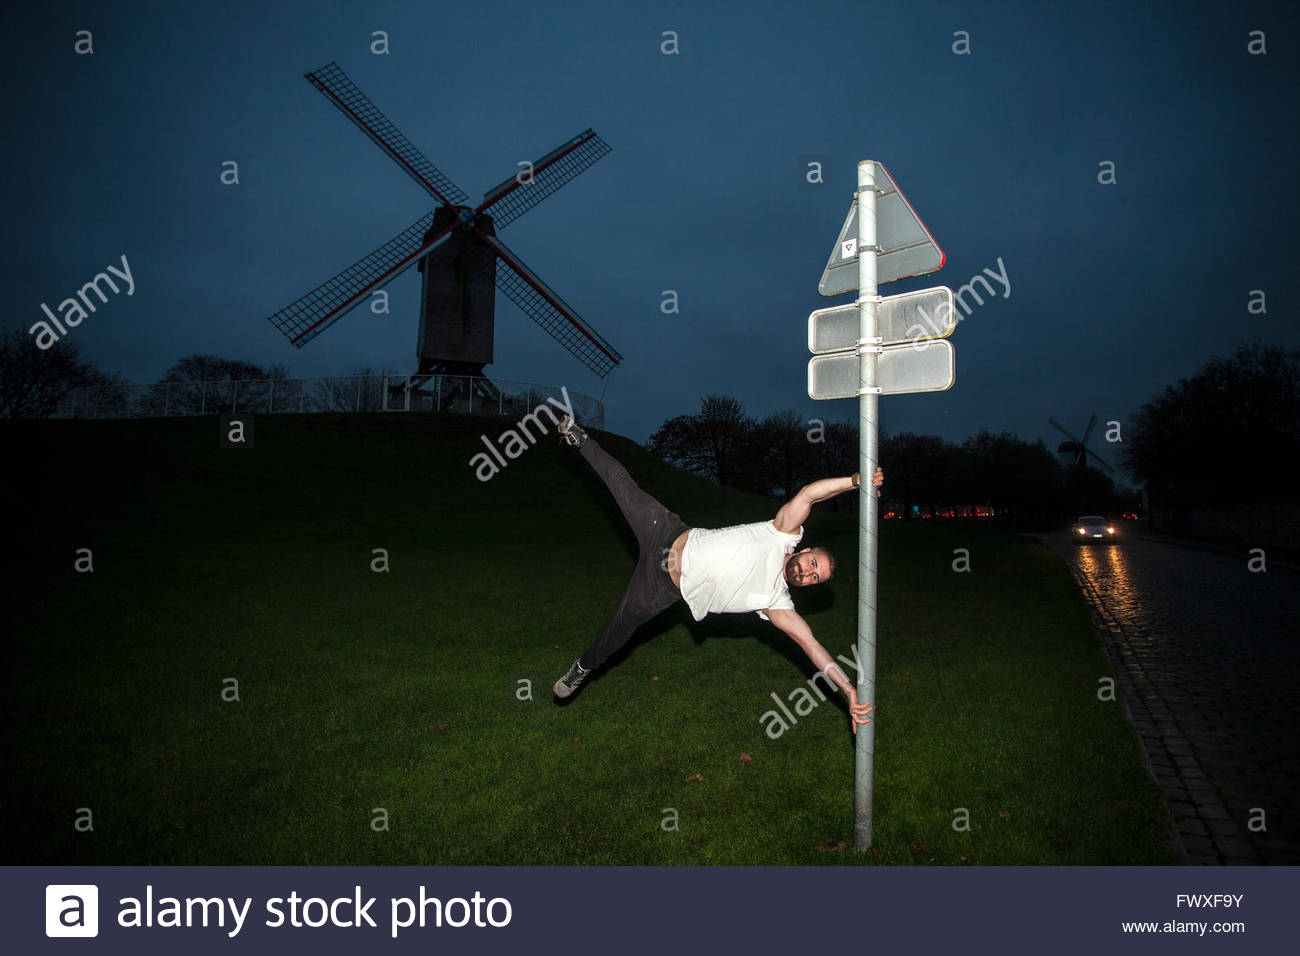 Traceur practicing parkour. Man imitating Sint-Janshuismolen windmill on  street sign, Windmills of Bruges  © - Stock Image